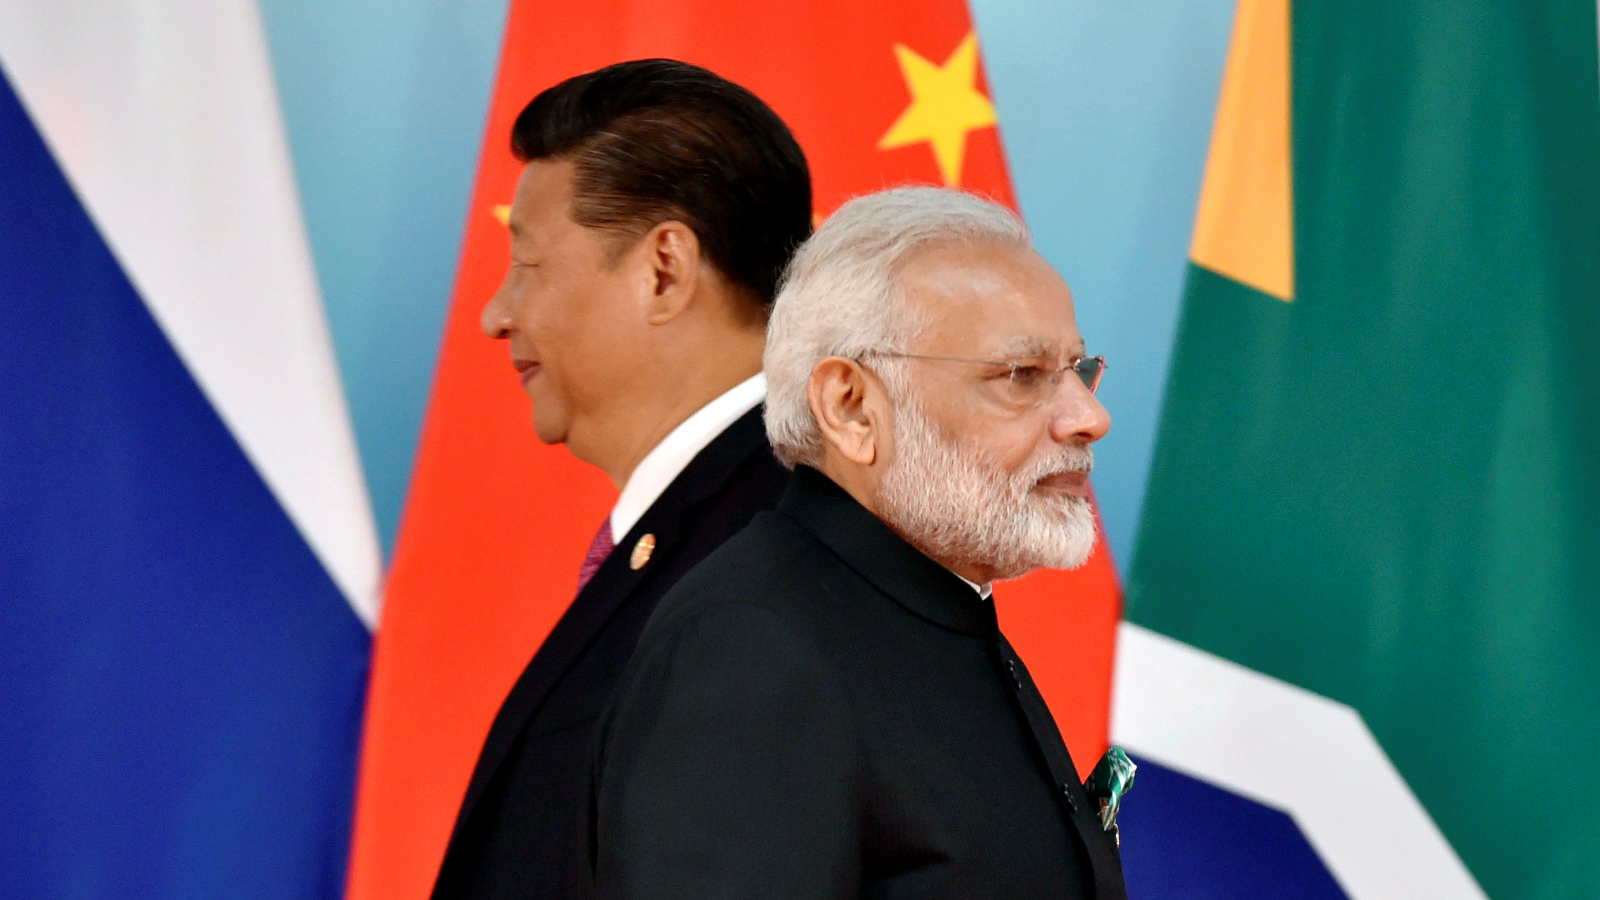 Modest expectations from PM Modi-Xi summit